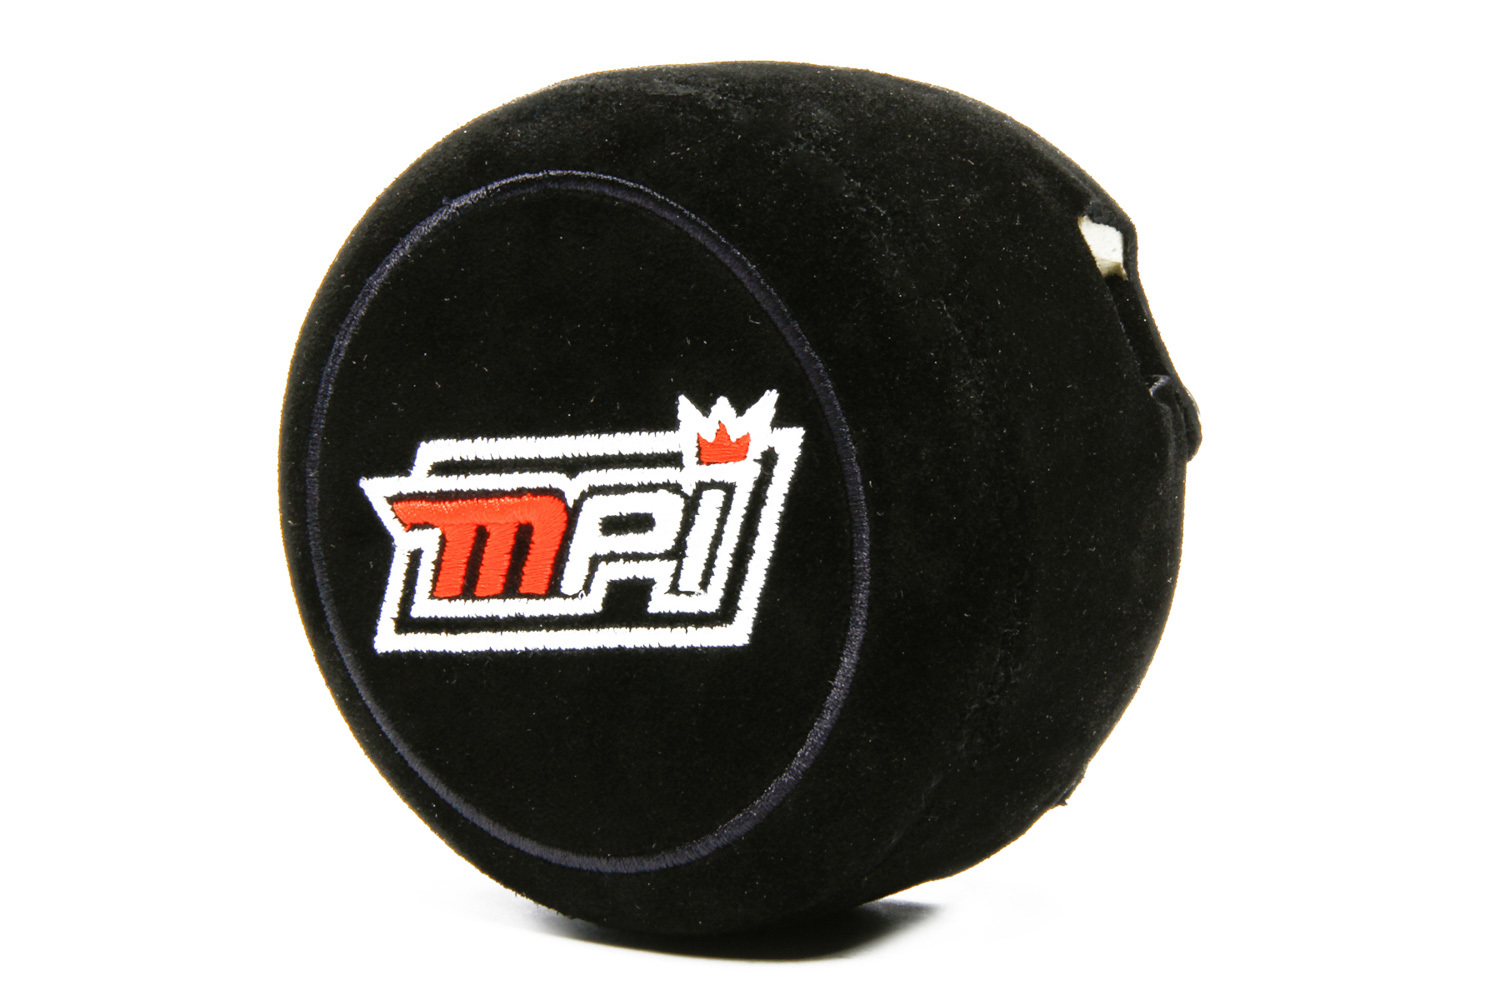 MPI USA MPI-CP-MPLM Steering Wheel Pad, 3 Spoke, 2 in Thick, Wrap Around, Snap-In Attachment, Suede, Black, Each